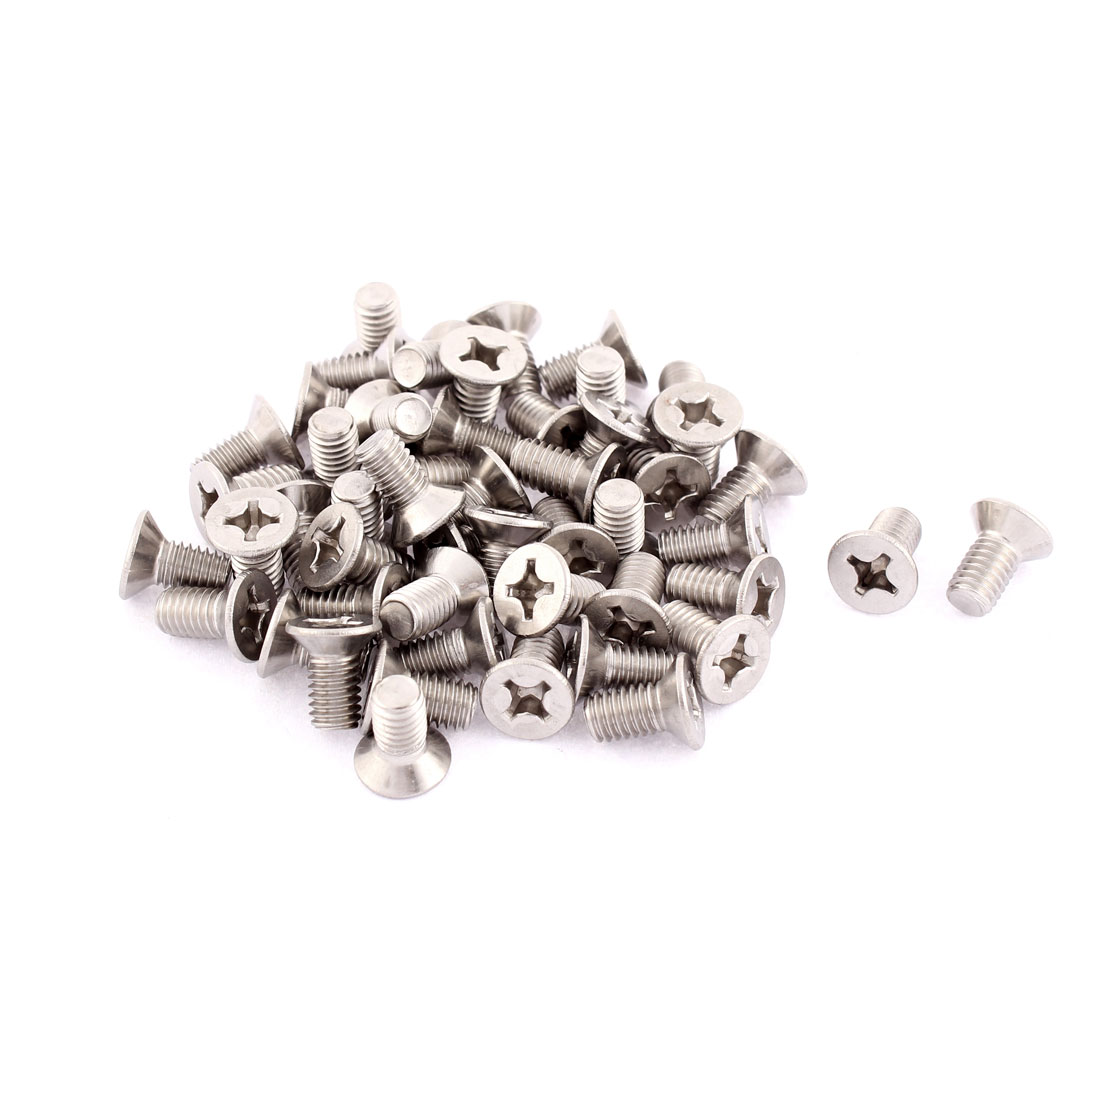 M6 x 12mm Phillips Head Stainless Steel Countersunk Bolts Machine Screws 50pcs